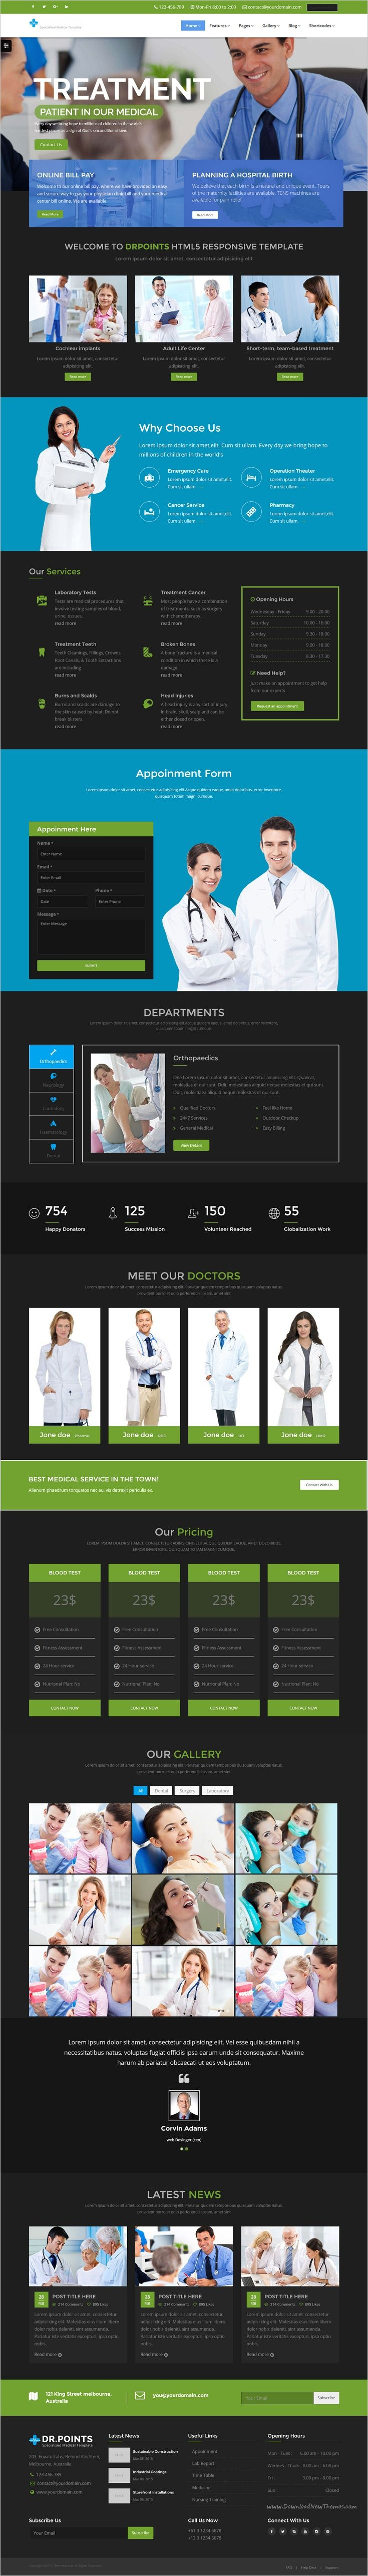 DrPonits is a wonderful premium Bootstrap #HTML5 #template for health, medical, #hospital and #dental service website download now➩ https://themeforest.net/item/drponits-health-medical-hospital-dental-html5-template/18683805?ref=Datasata